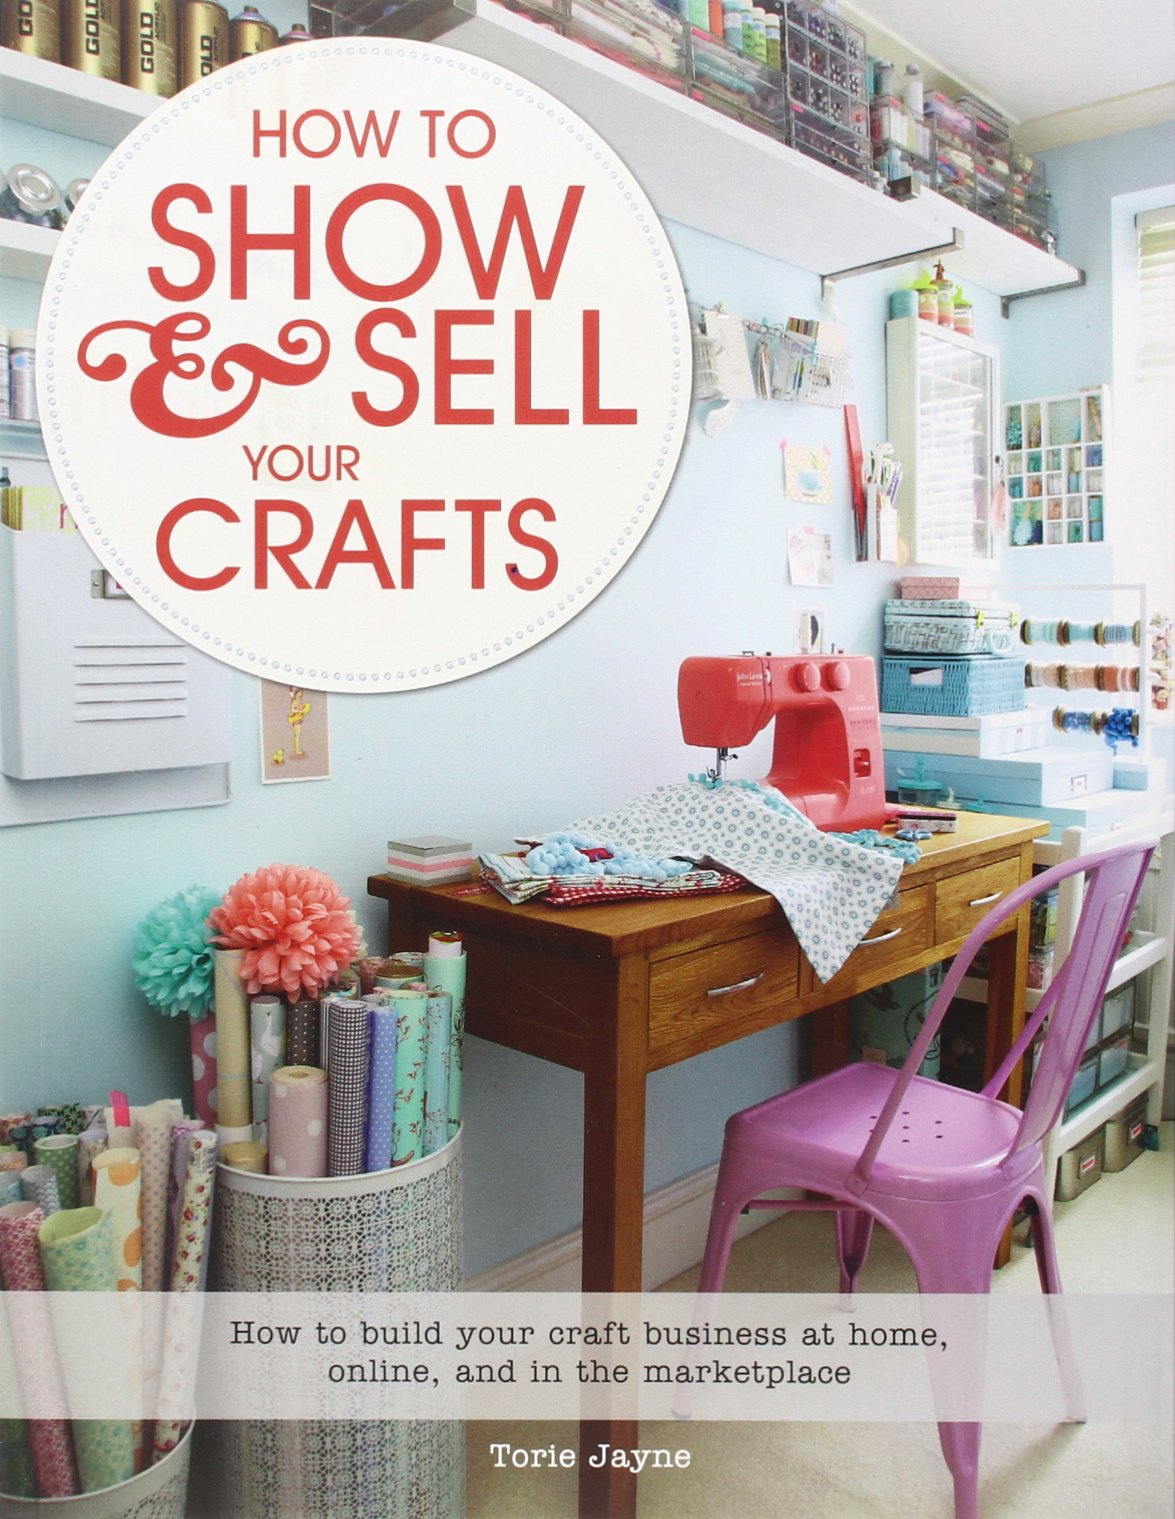 How To Show U0026 Sell Your Crafts: How To Build Your Craft Business At Home,  Online, And In The Marketplace: Torie Jayne: 9781250044723: Amazon.com:  Books